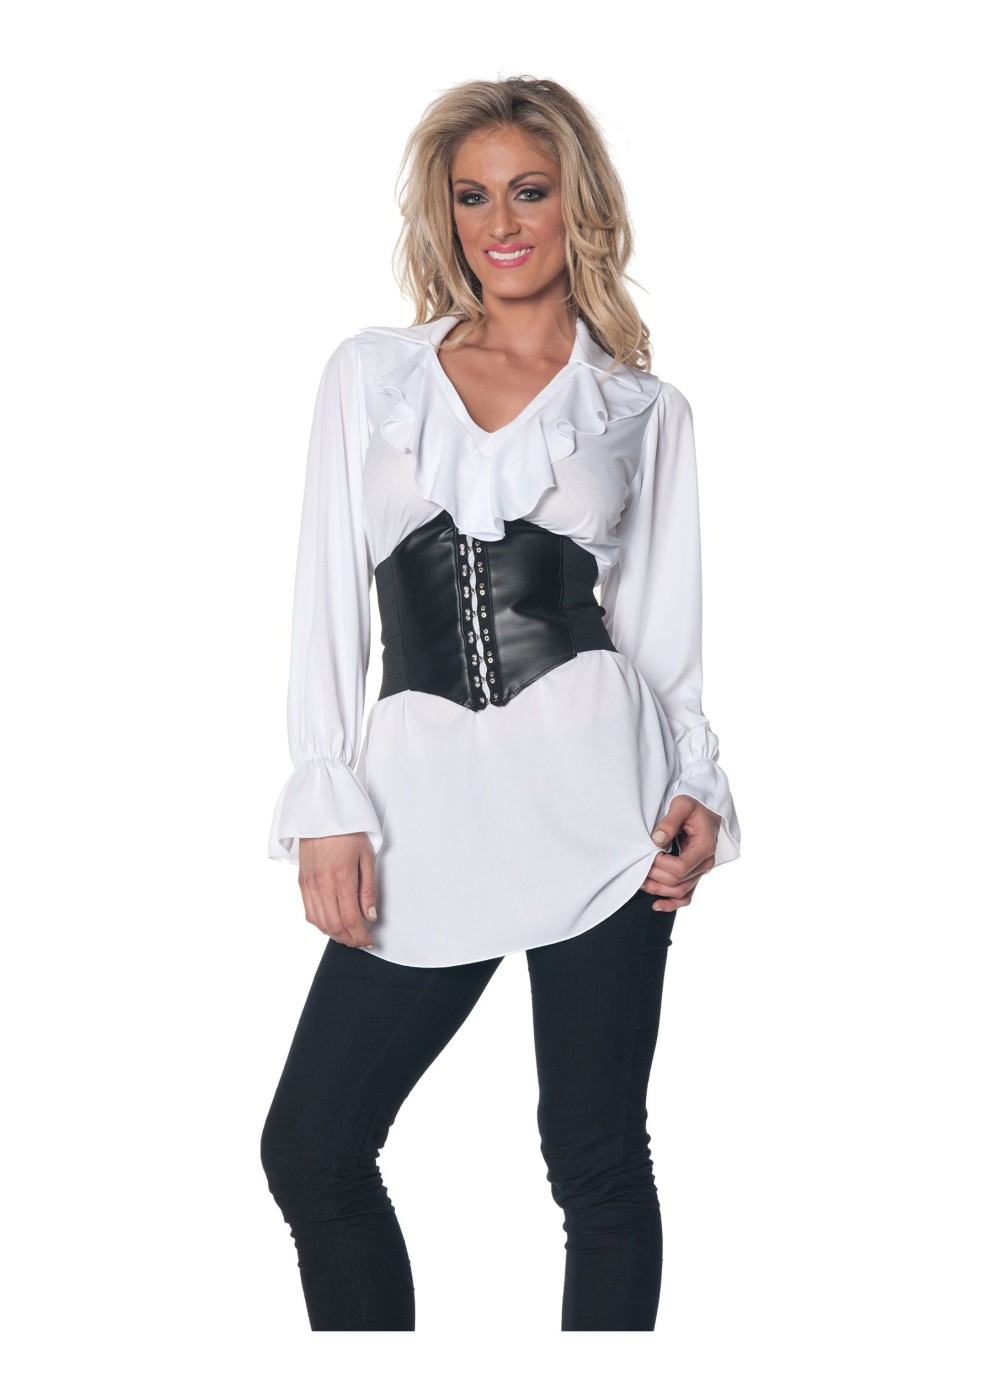 Pirate Ruffle Blouse Costume